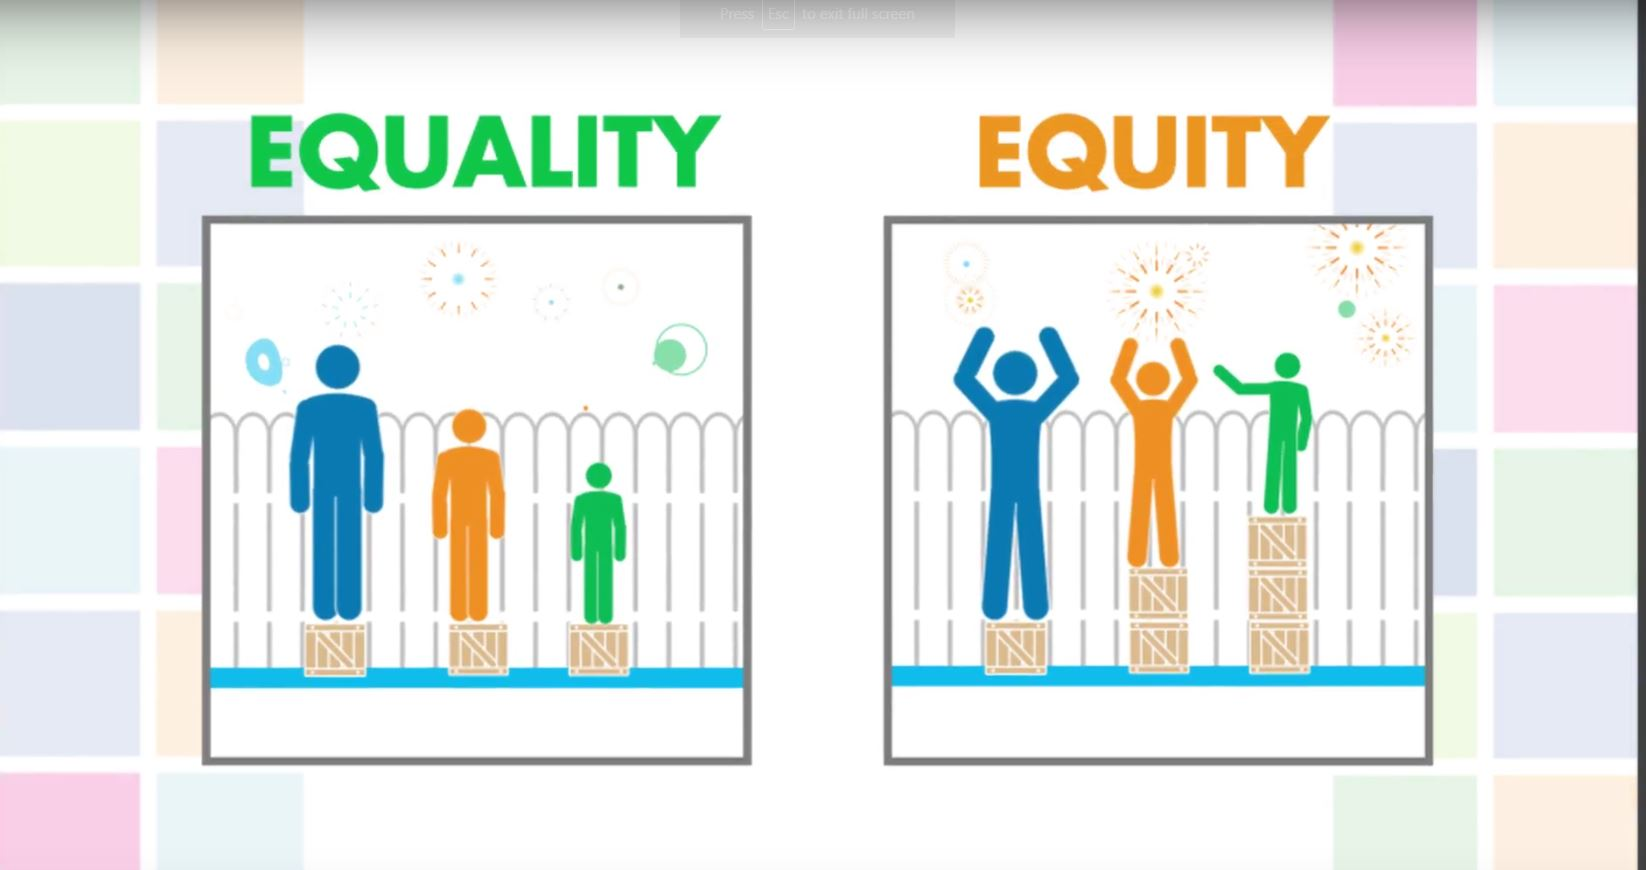 Screenshot from the video GBA+: Equality or Equity?